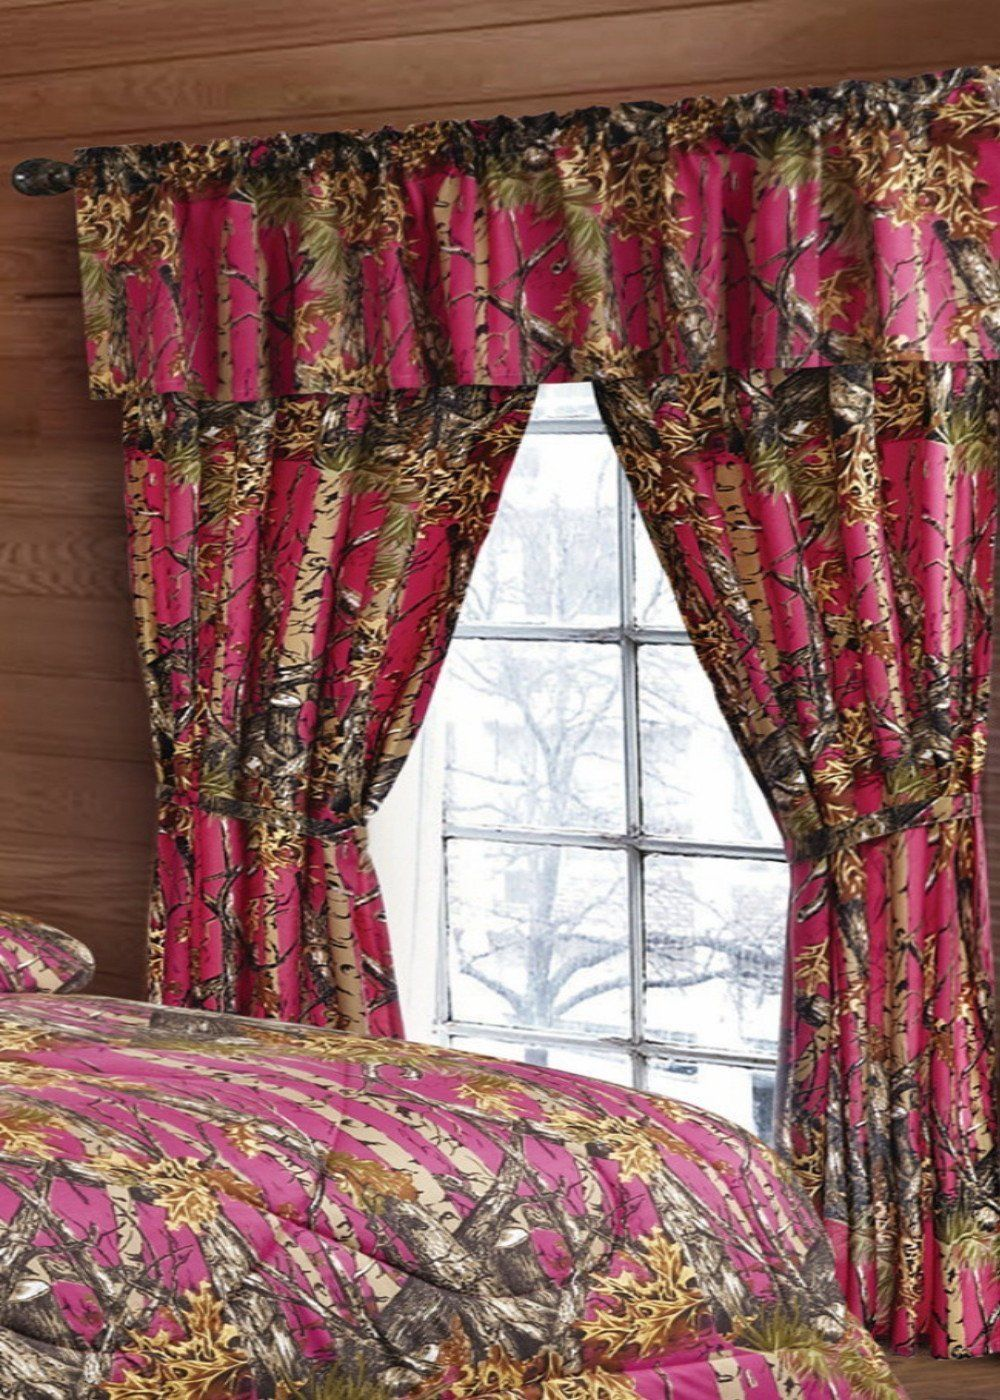 Elegant Hot Pink Camo Curtains - The Swamp Company pink camo curtains